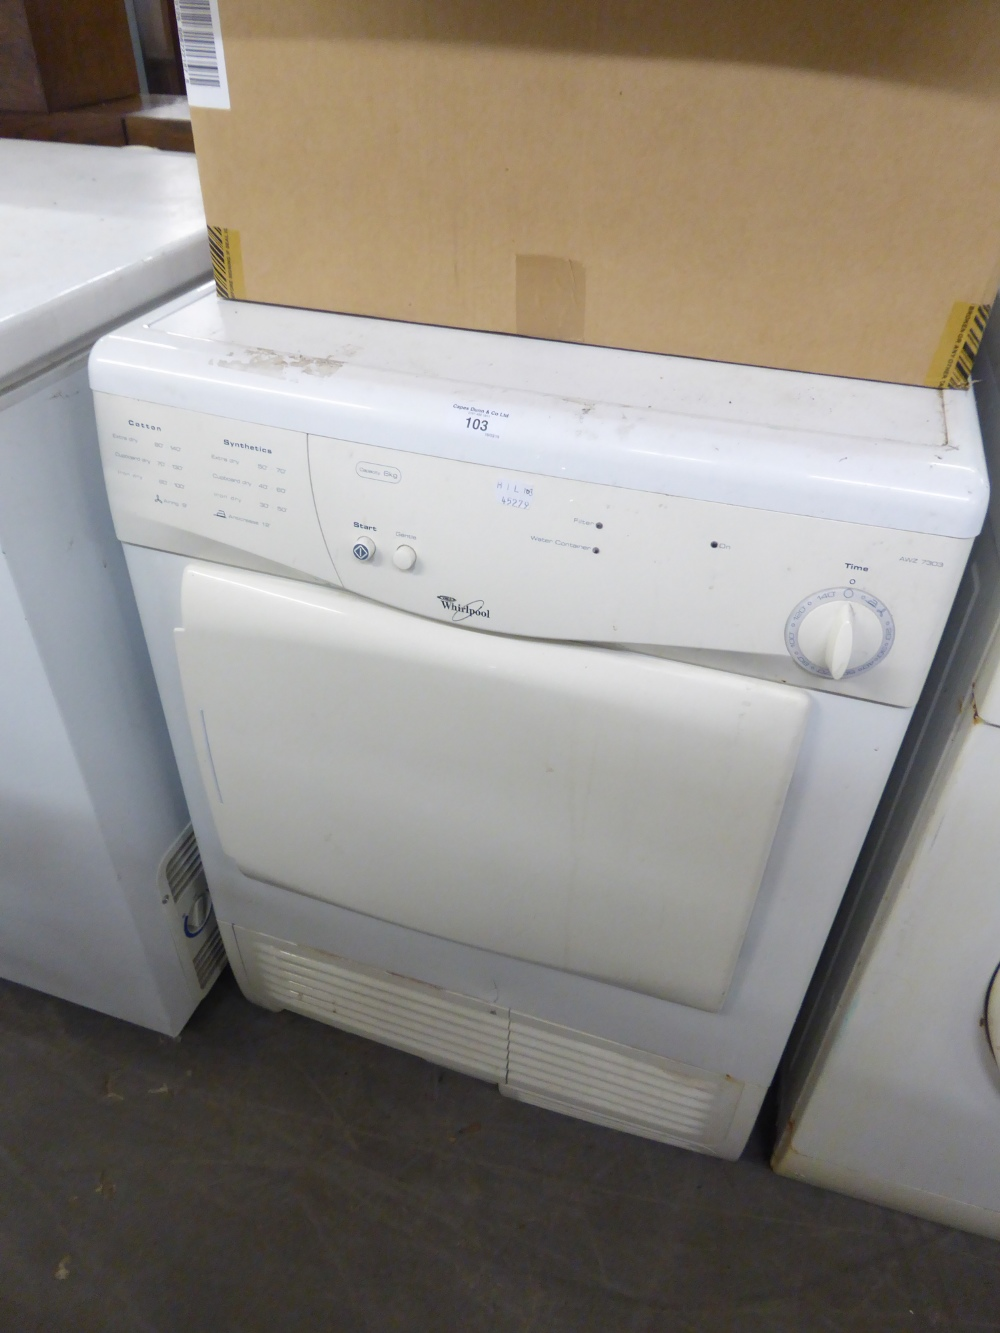 Lot 103 - A WHIRLPOOL TUMBLER DRYER